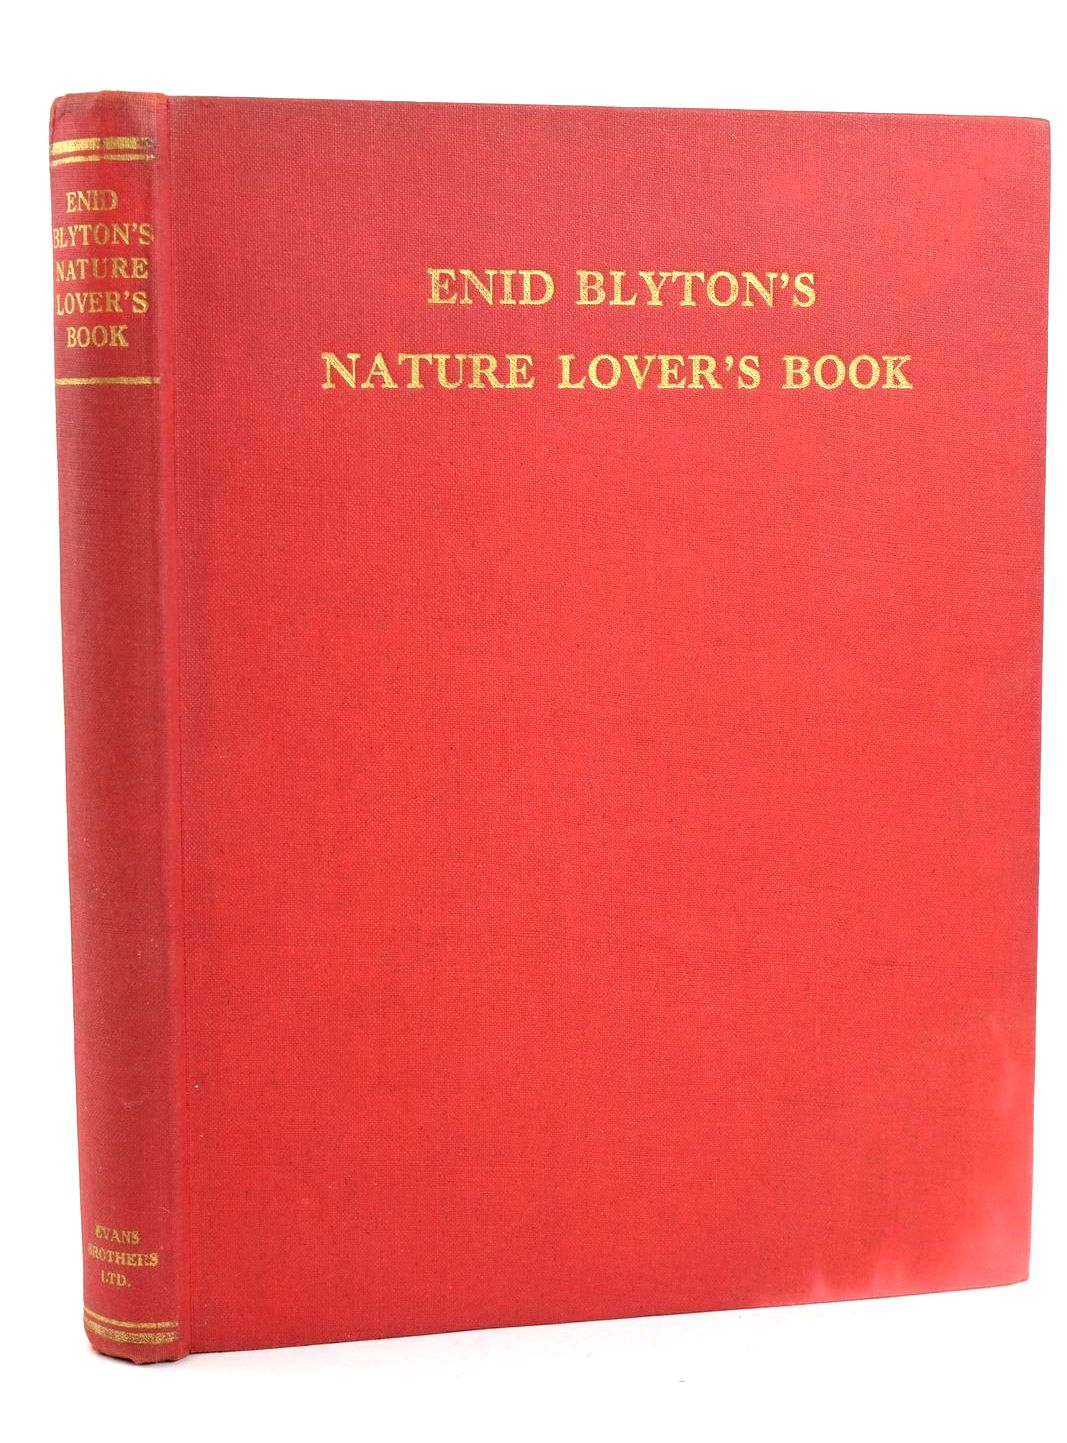 Photo of ENID BLYTON'S NATURE LOVER'S BOOK written by Blyton, Enid illustrated by Nachshen, Donia Hopking, Noel published by Evans Brothers Limited (STOCK CODE: 1318763)  for sale by Stella & Rose's Books